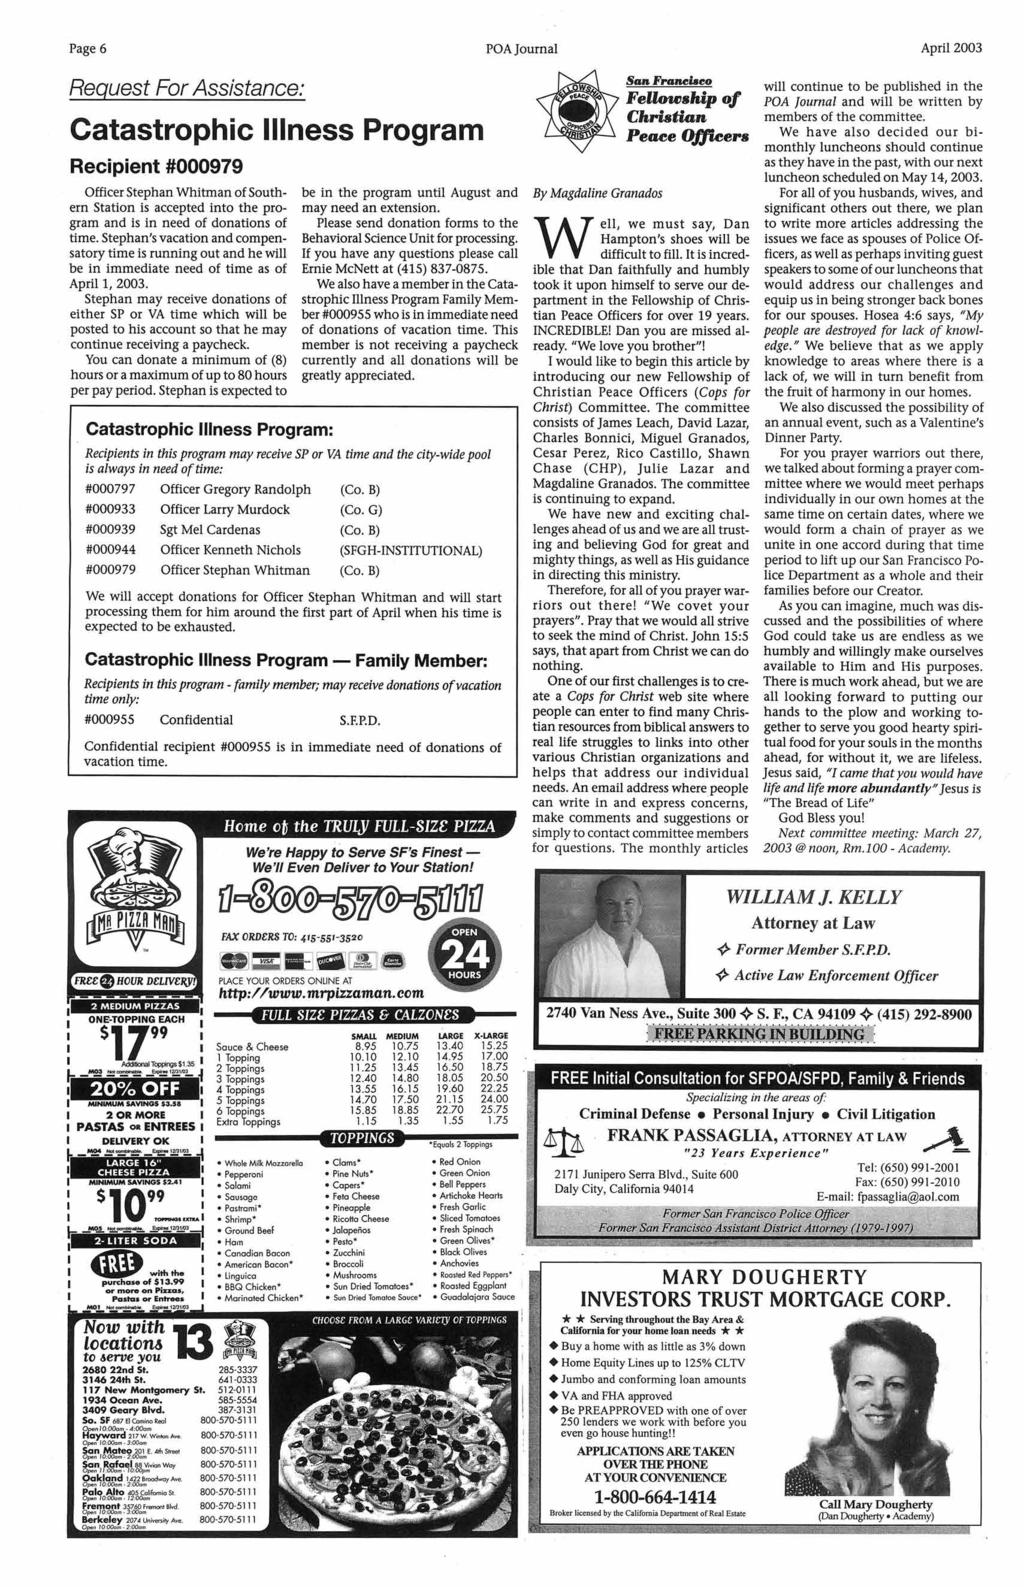 Sfpd Is Not In Crisis Pdf Opgir Chevy El Camino 1967 Dash Wiring Harness Page 6 Poa Journal April 2003 Request For Assistance Catastrophic Llness Program Recipient 000979